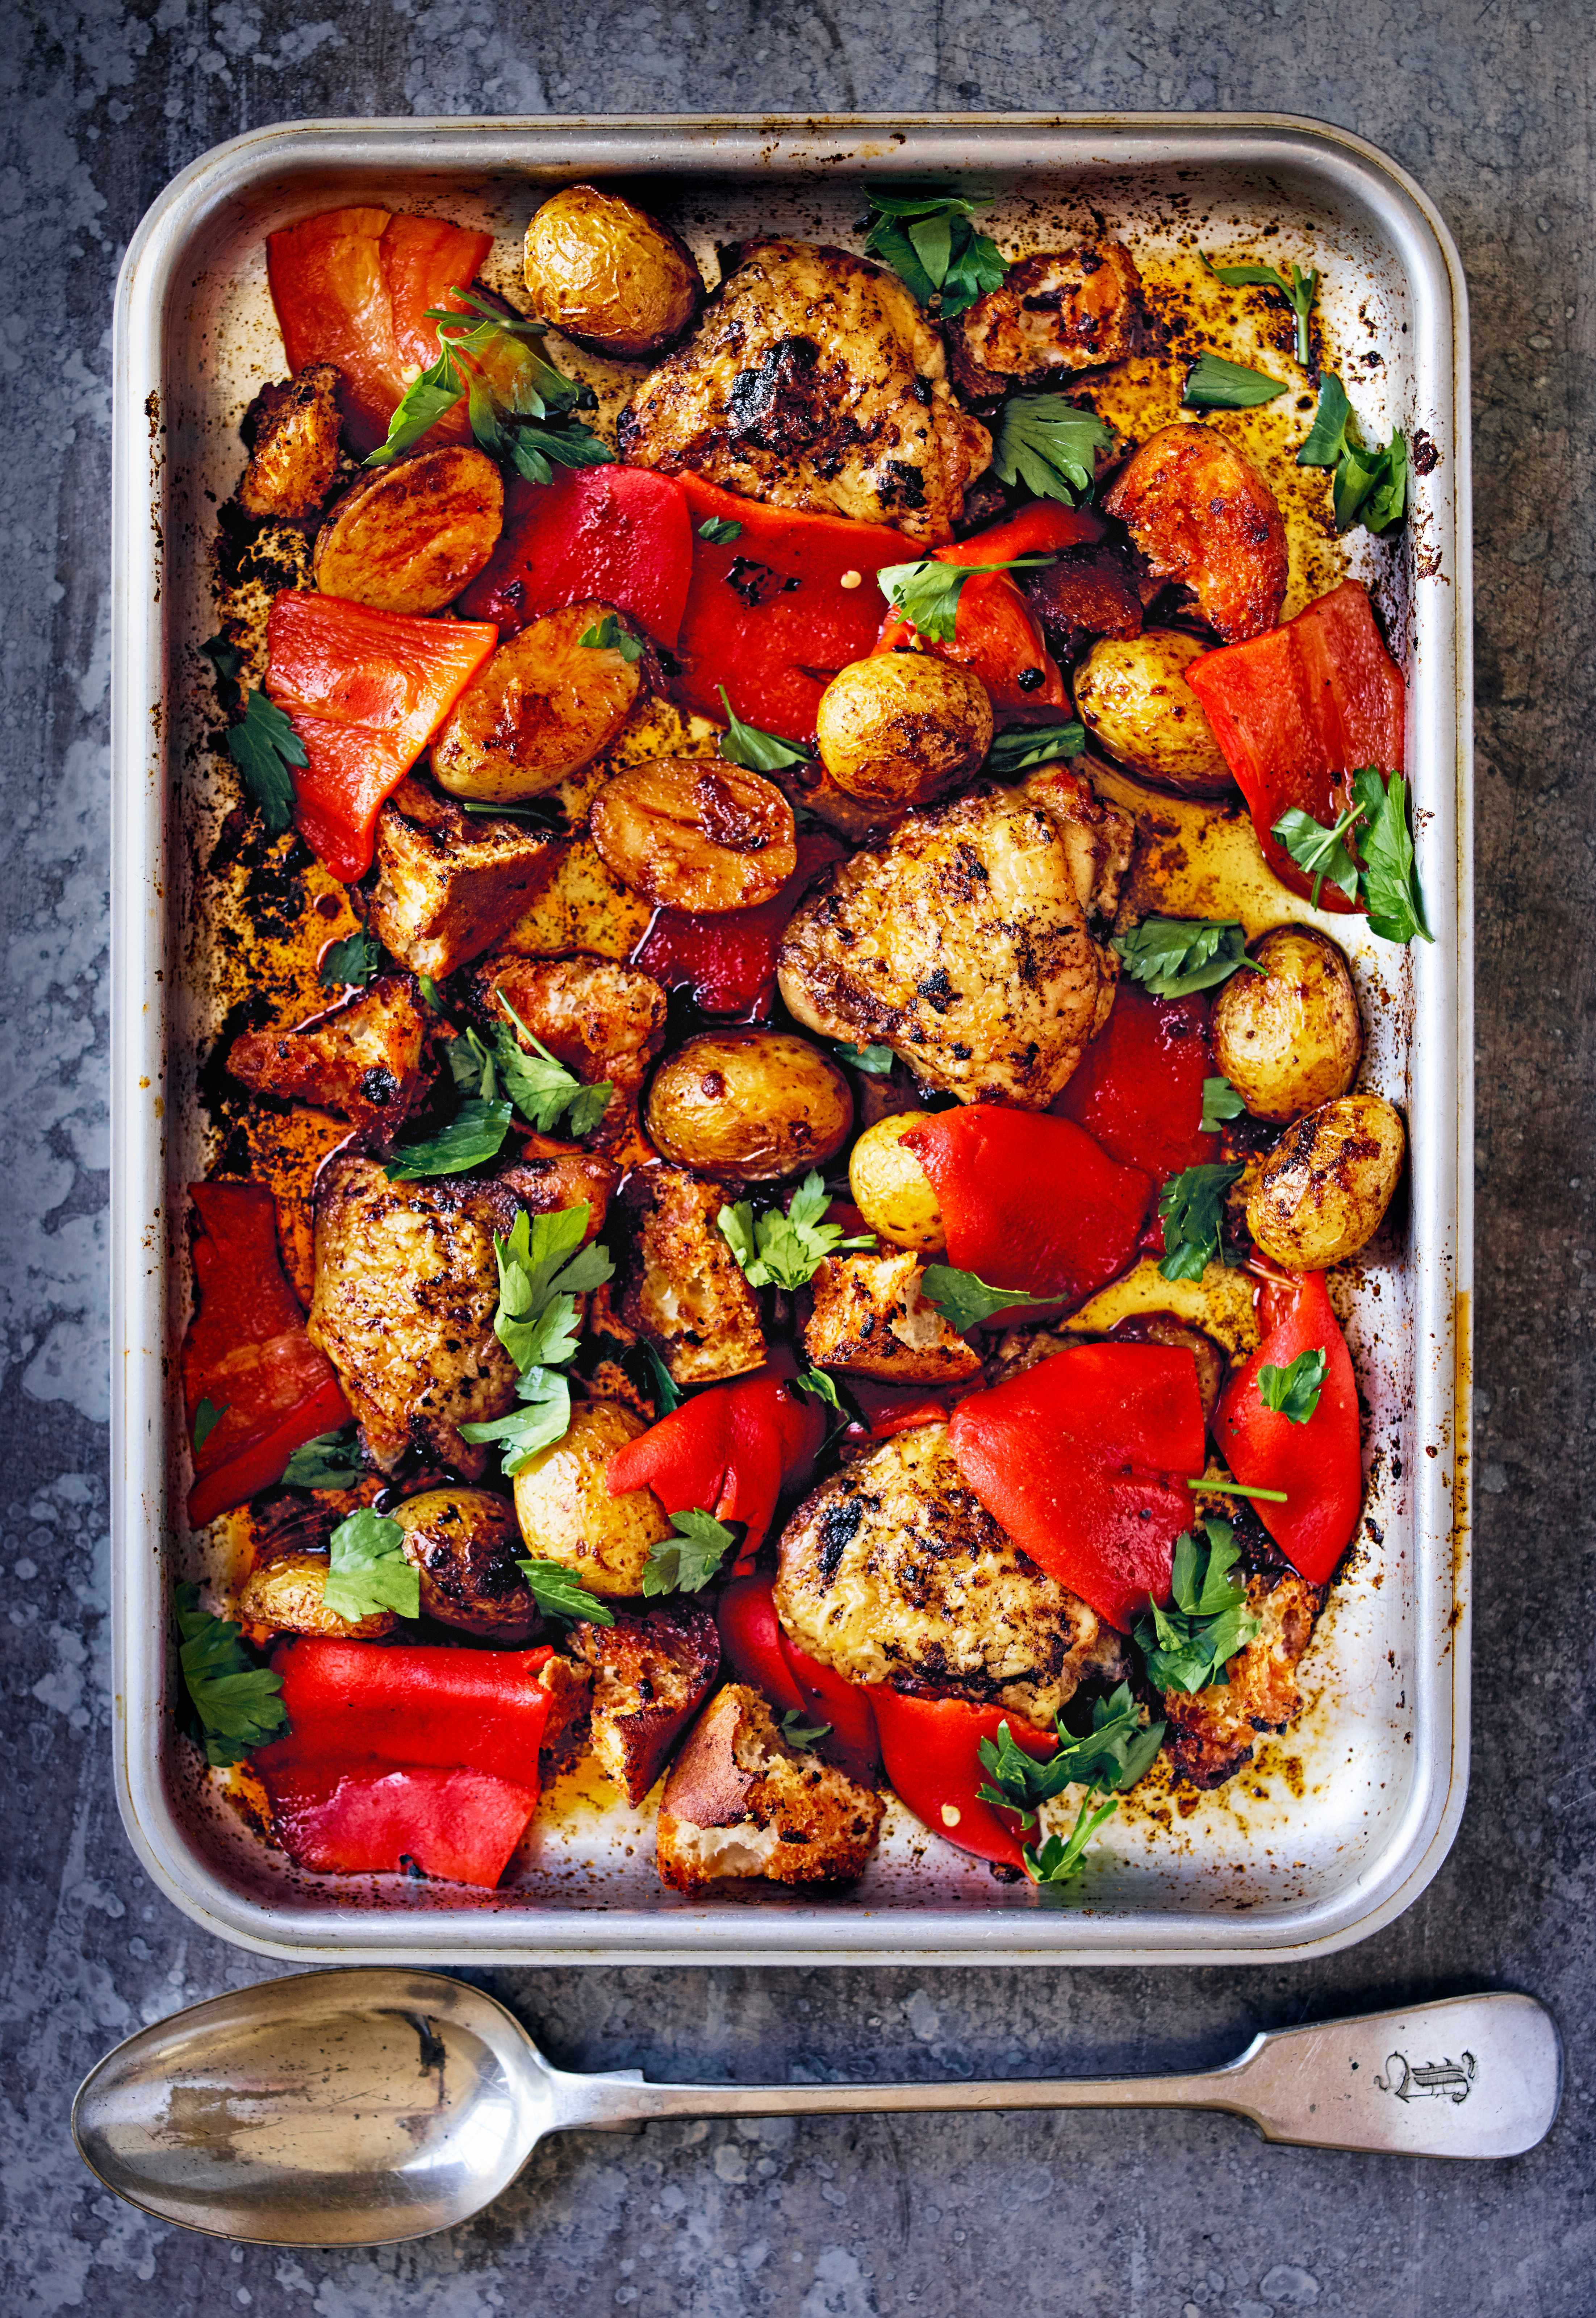 Chicken Tray Bake Recipes and Other Tray Bakes